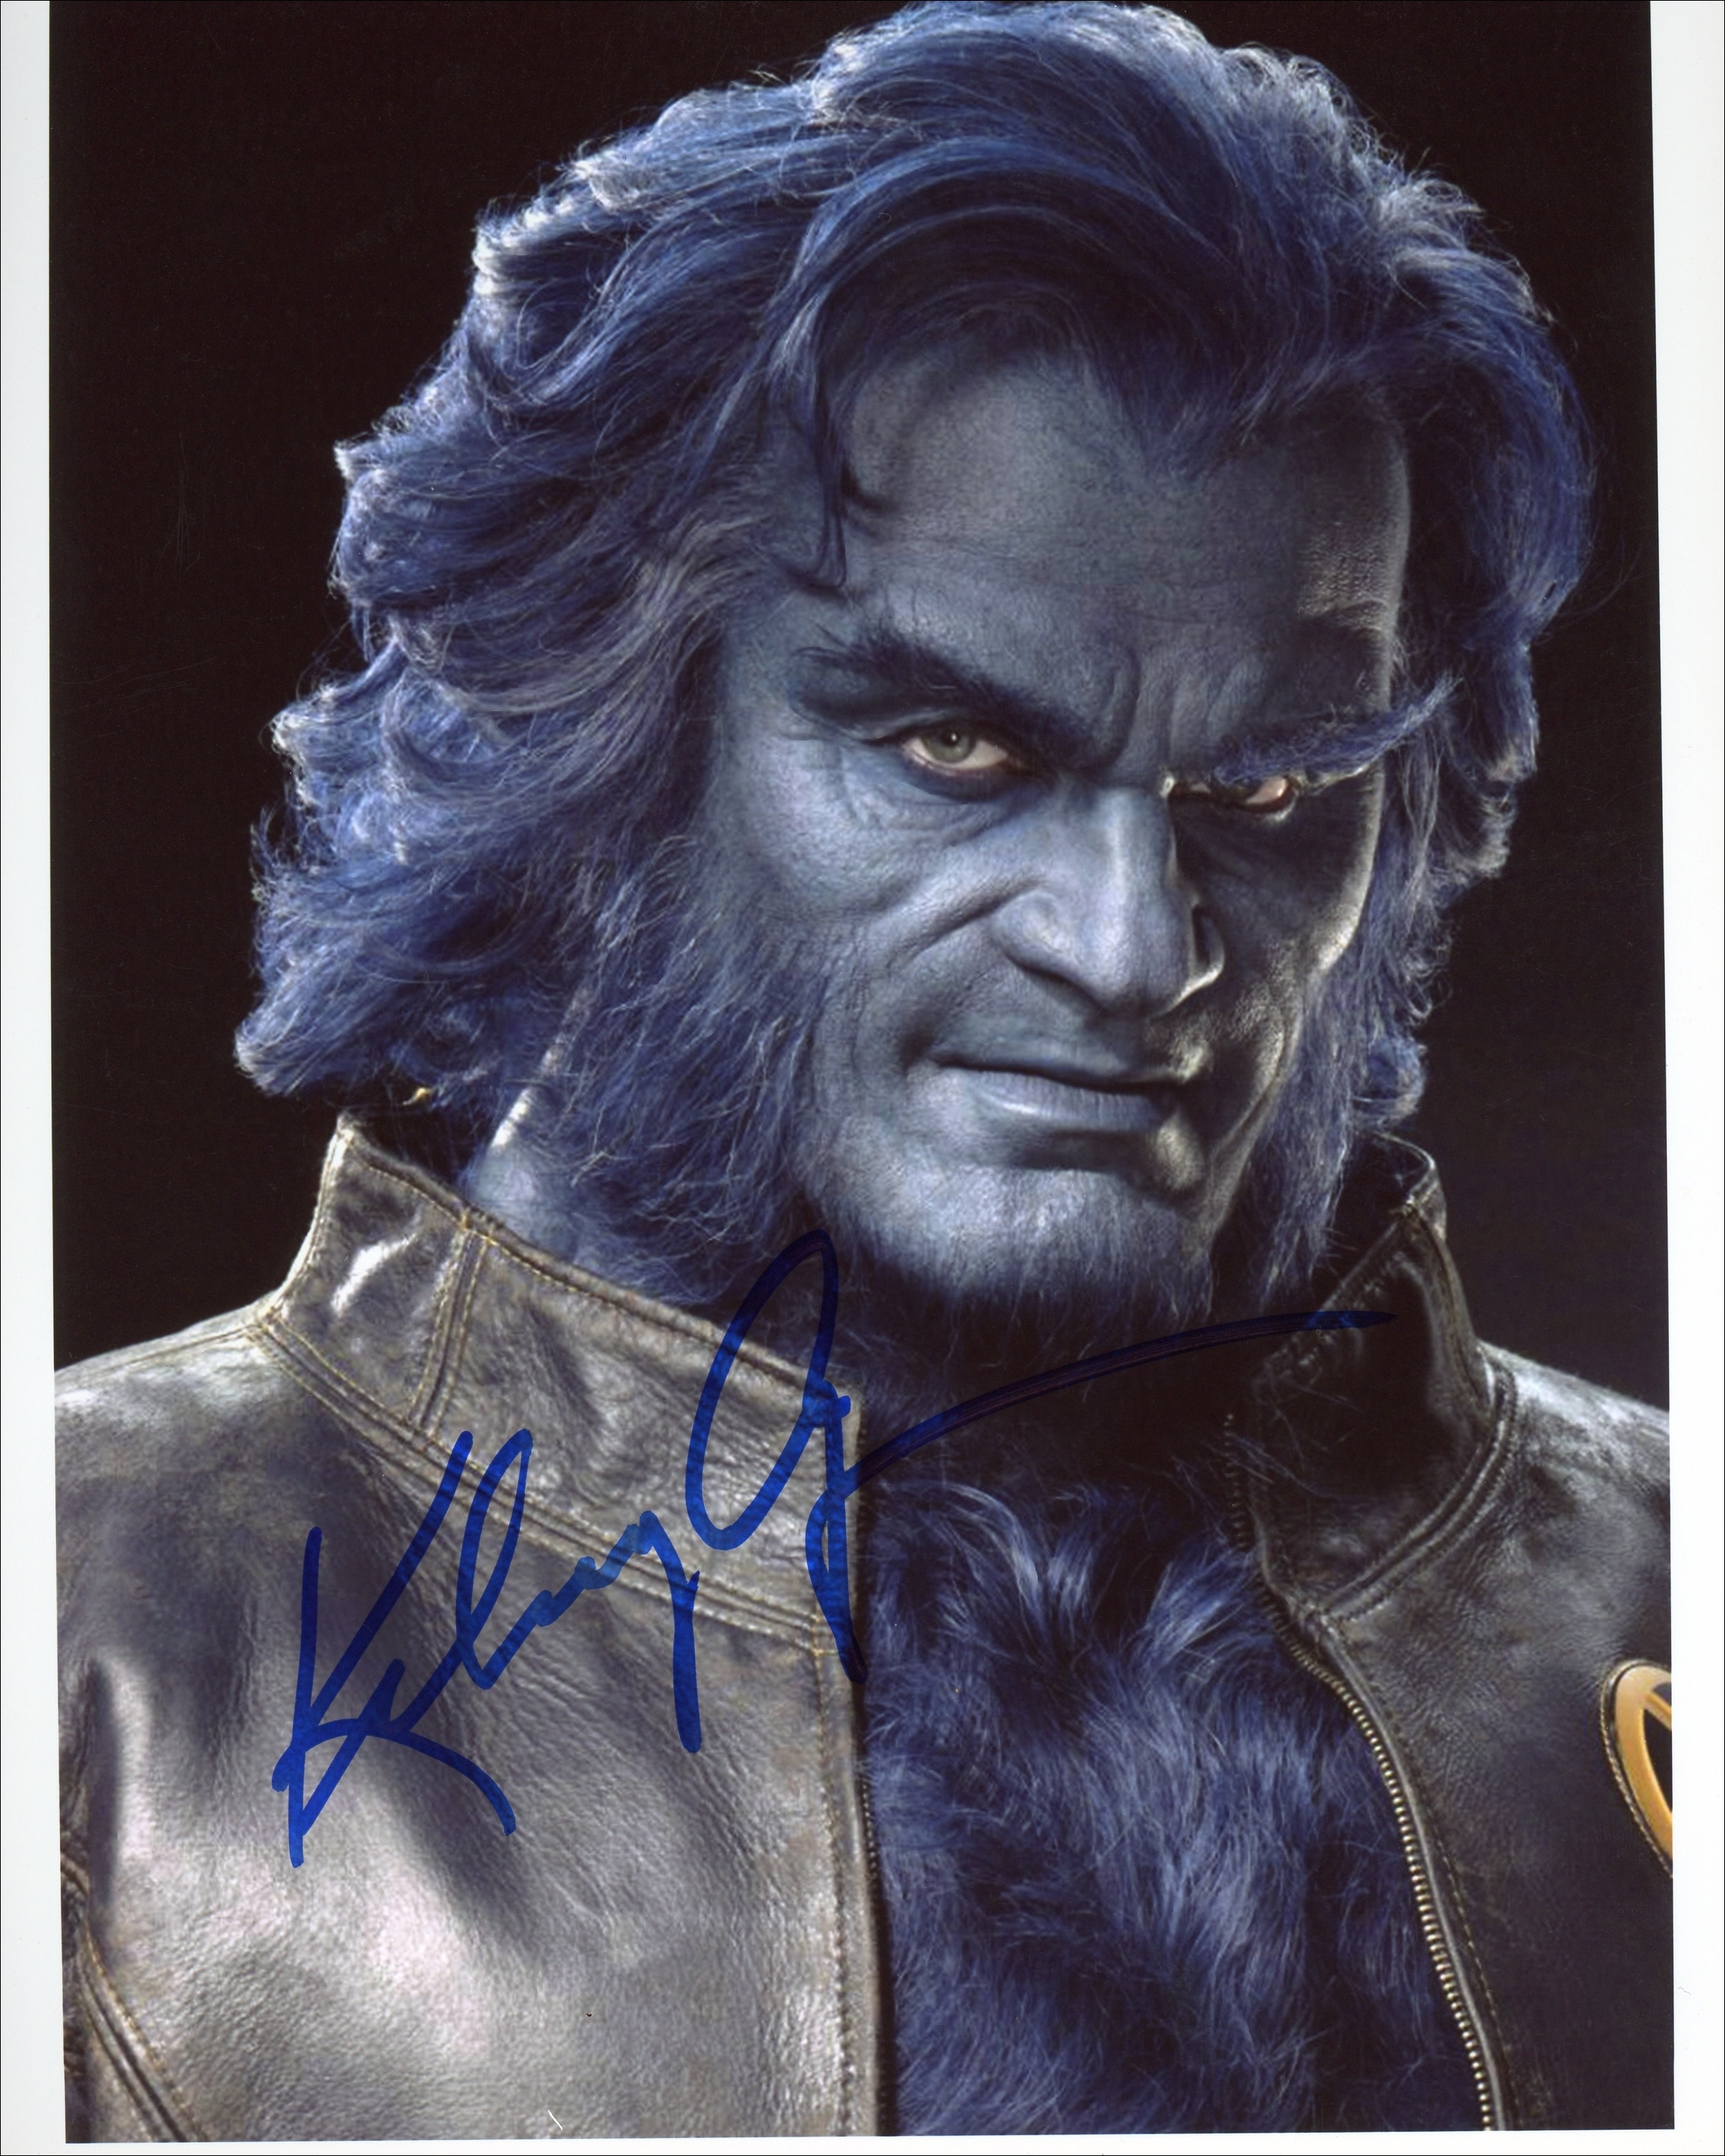 Kelsey Grammer Signed Photo